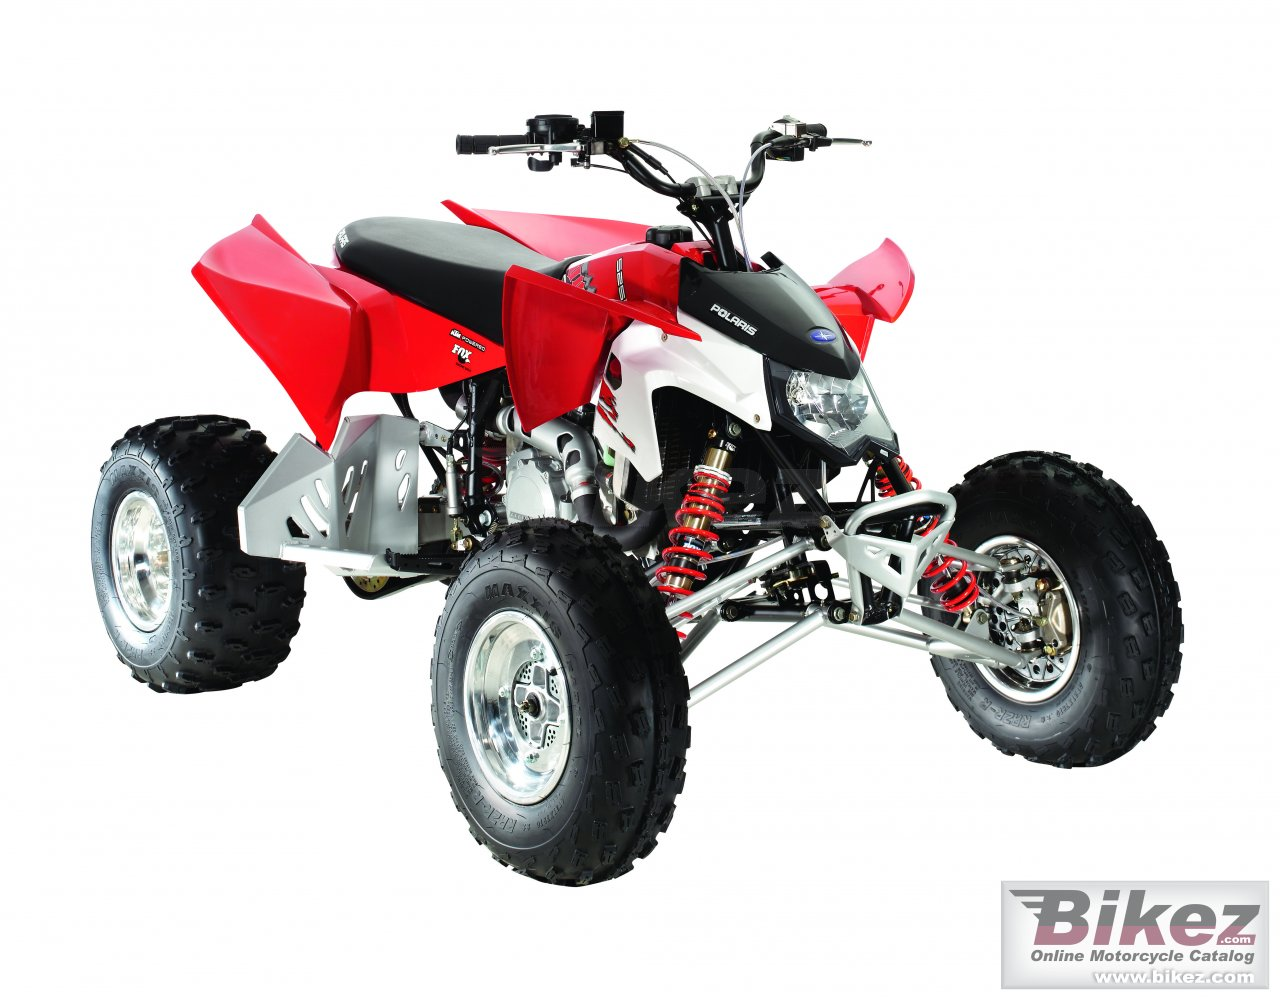 Big Polaris outlaw 525 s picture and wallpaper from Bikez.com